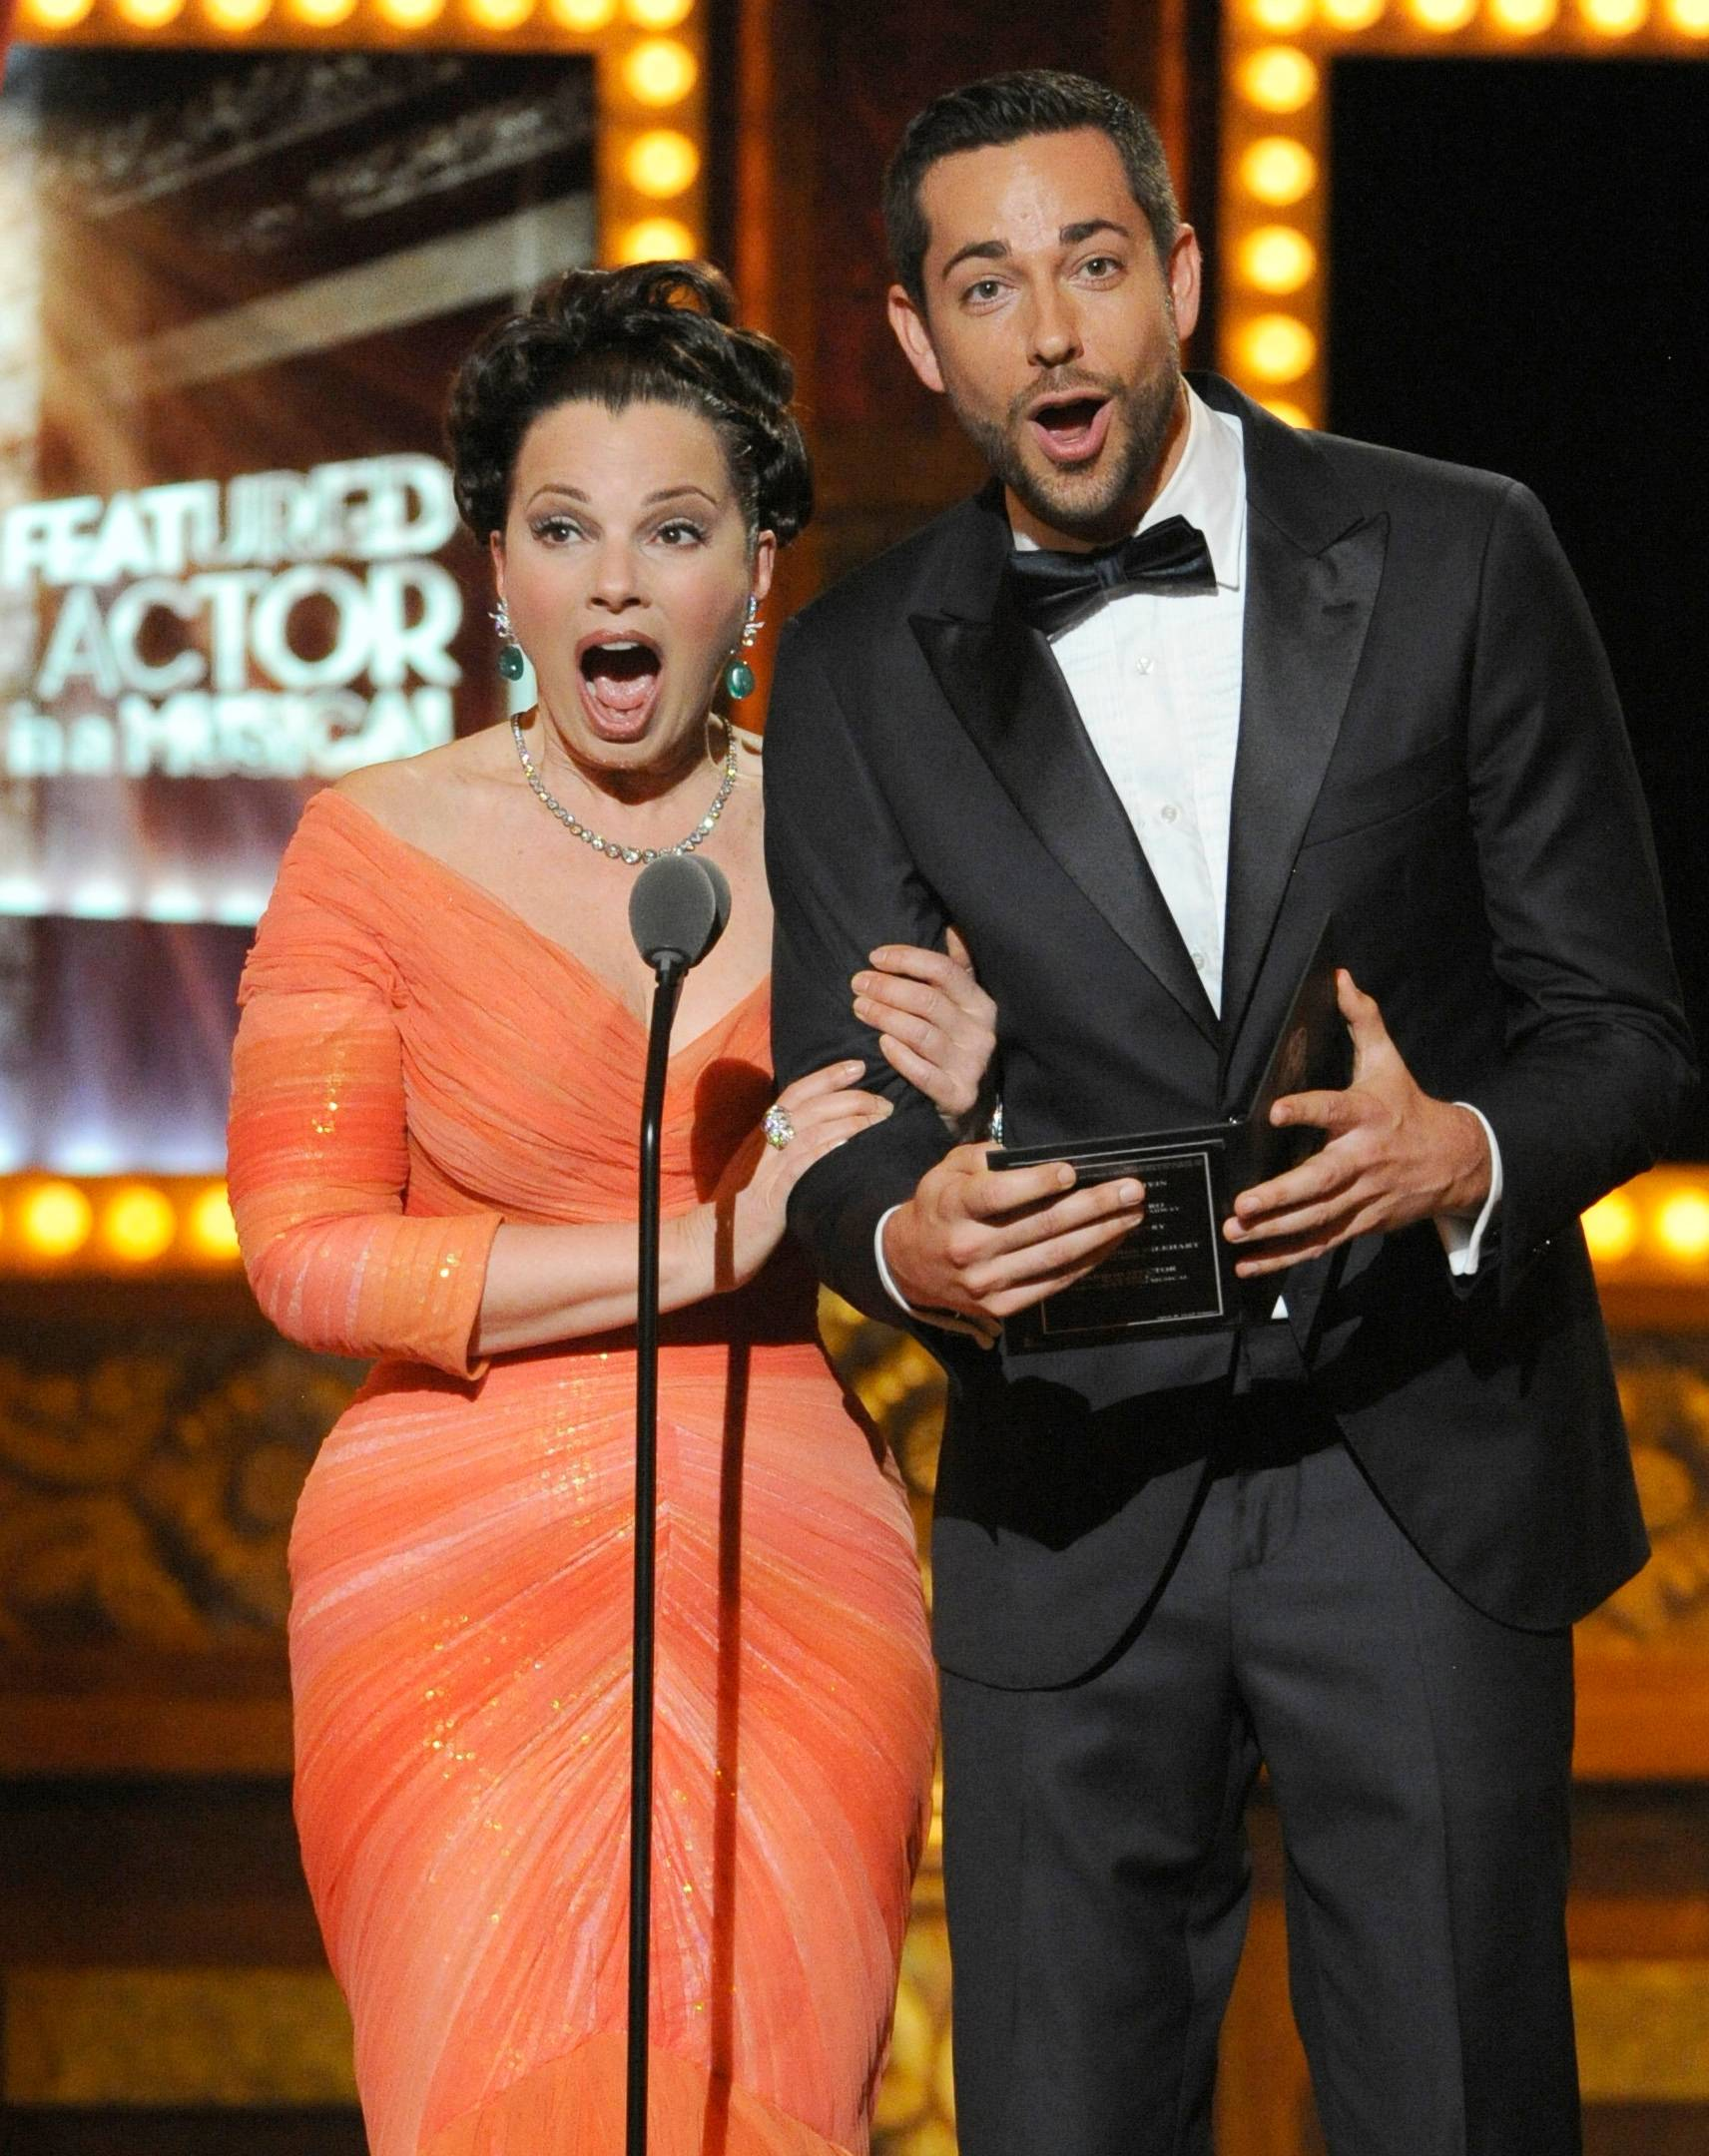 Fran Drescher and Zachary Levi present the award for best performance by an actor in a featured role in a musical on stage at the 68th annual Tony Awards at Radio City Music Hall on Sunday.